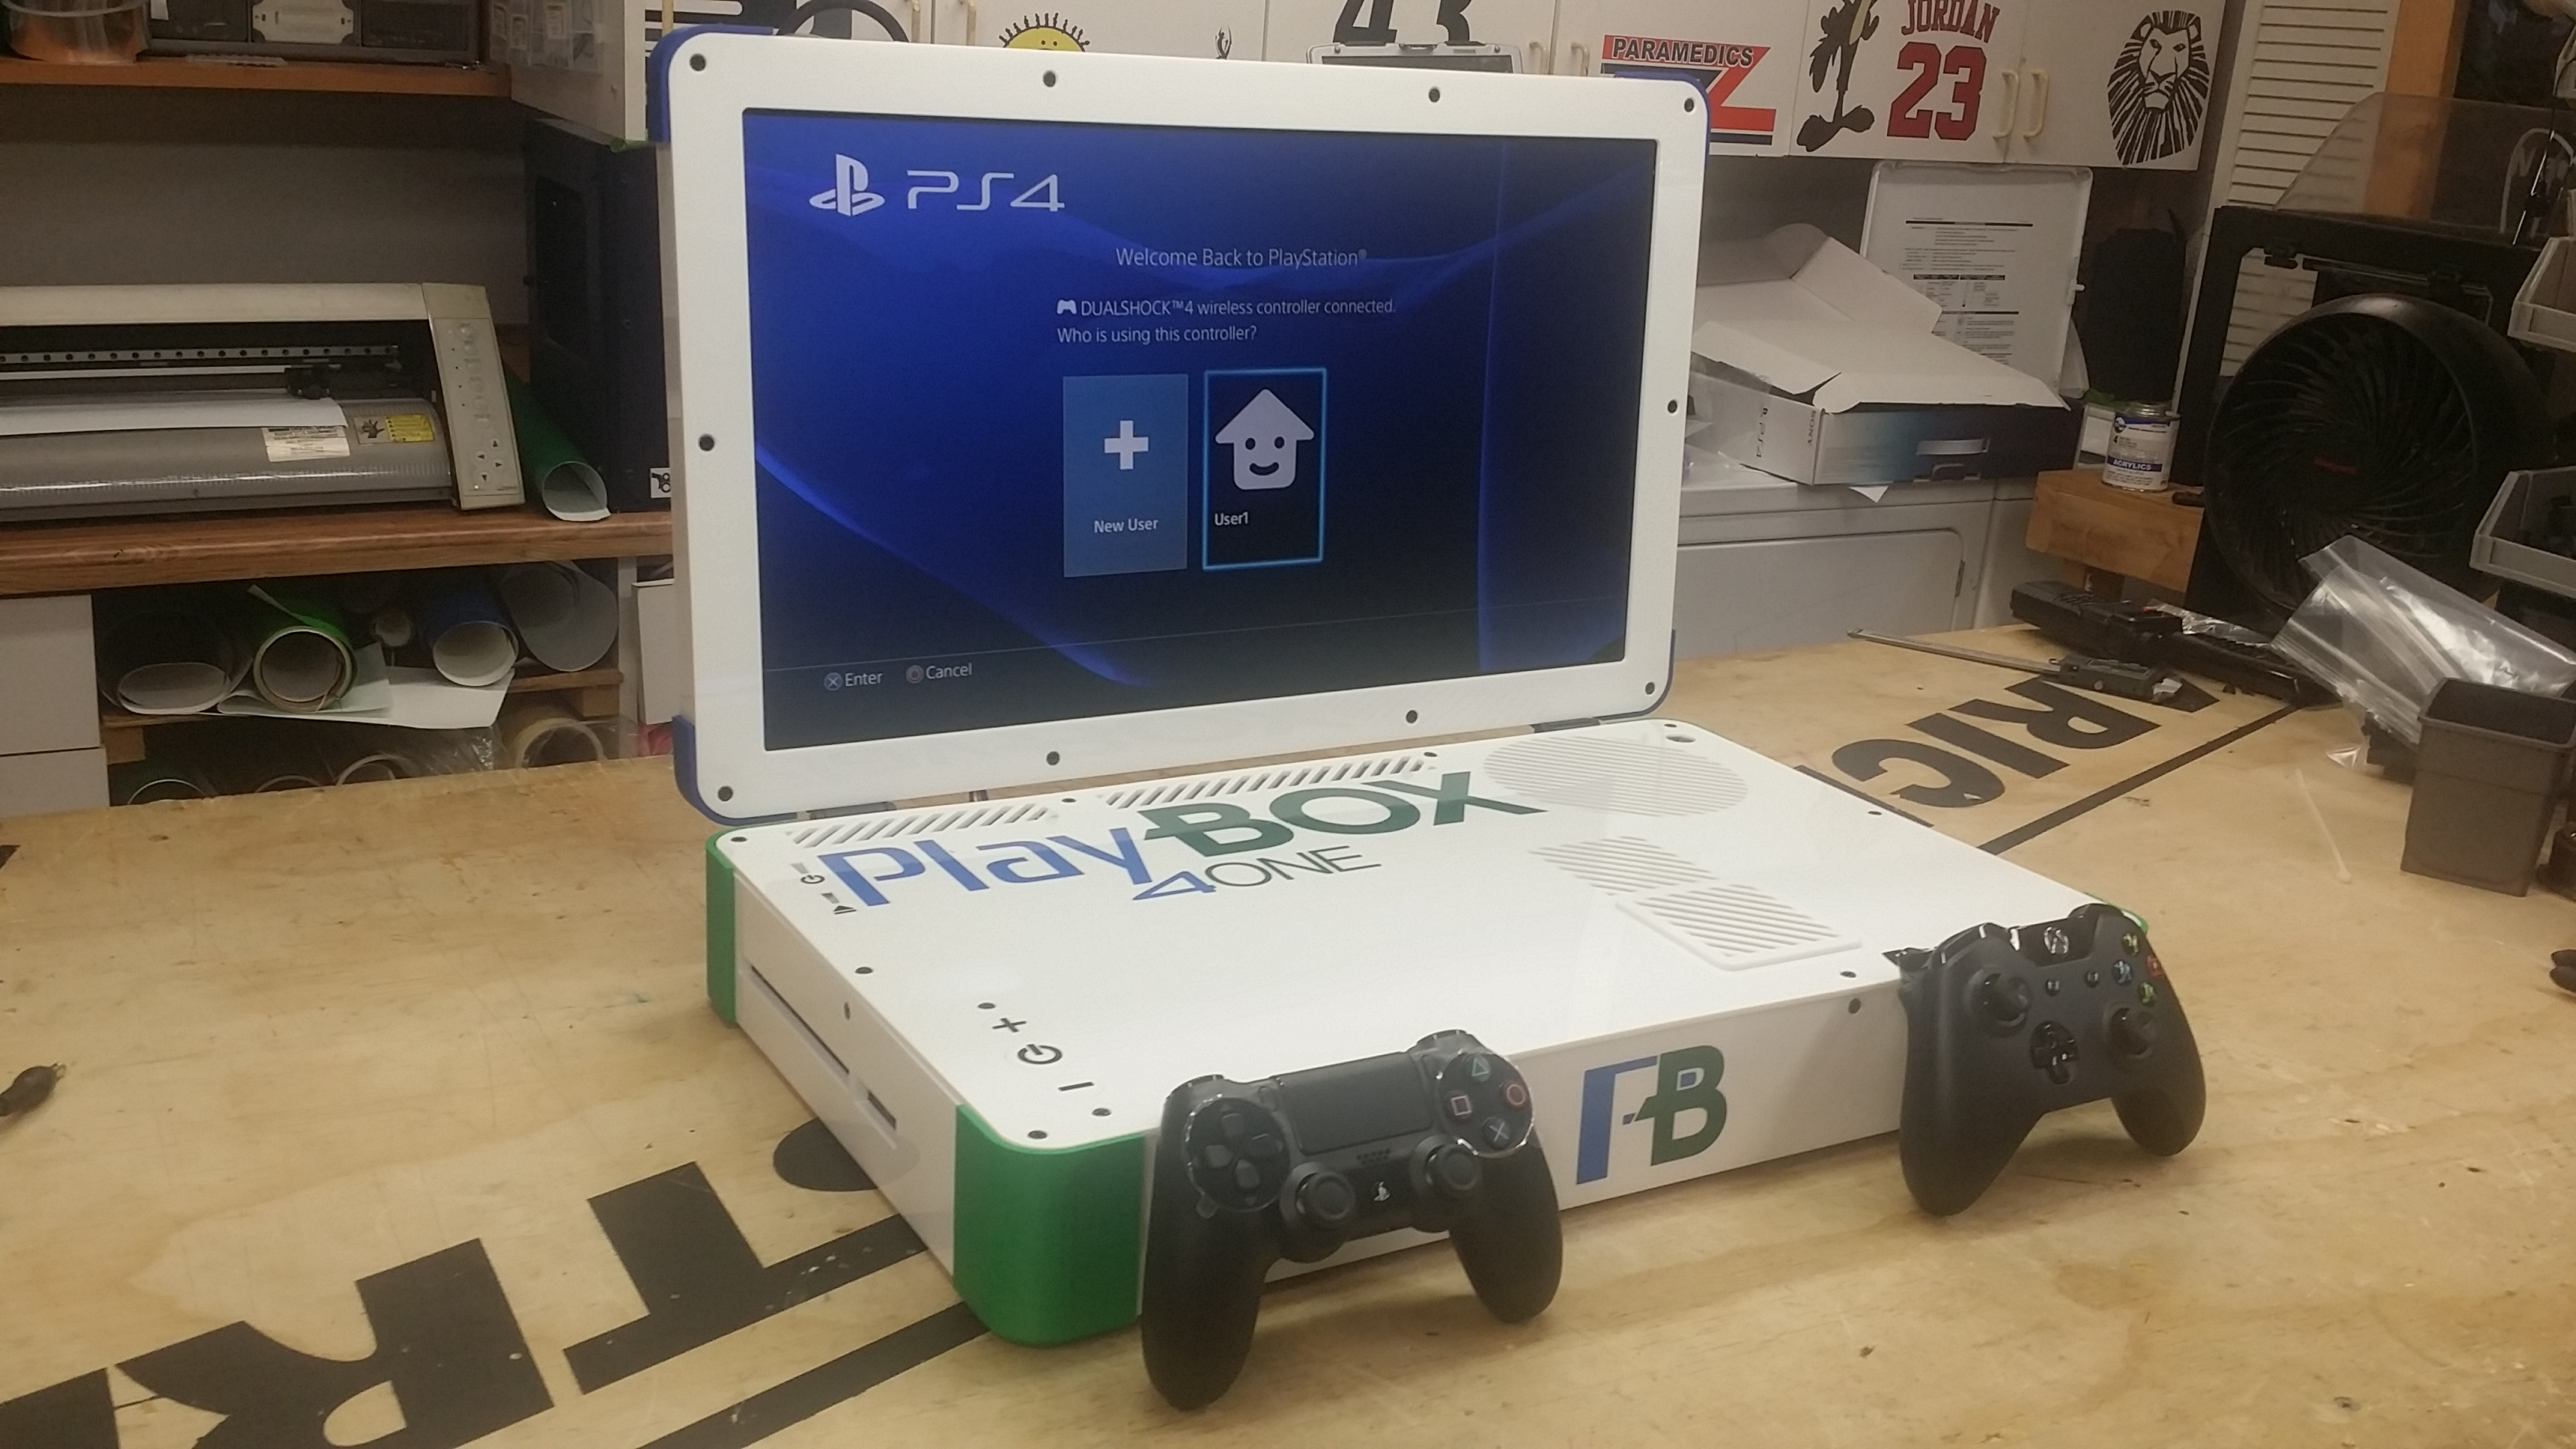 Modder Creates PS4 Xbox One Hybrid the size of a laptop